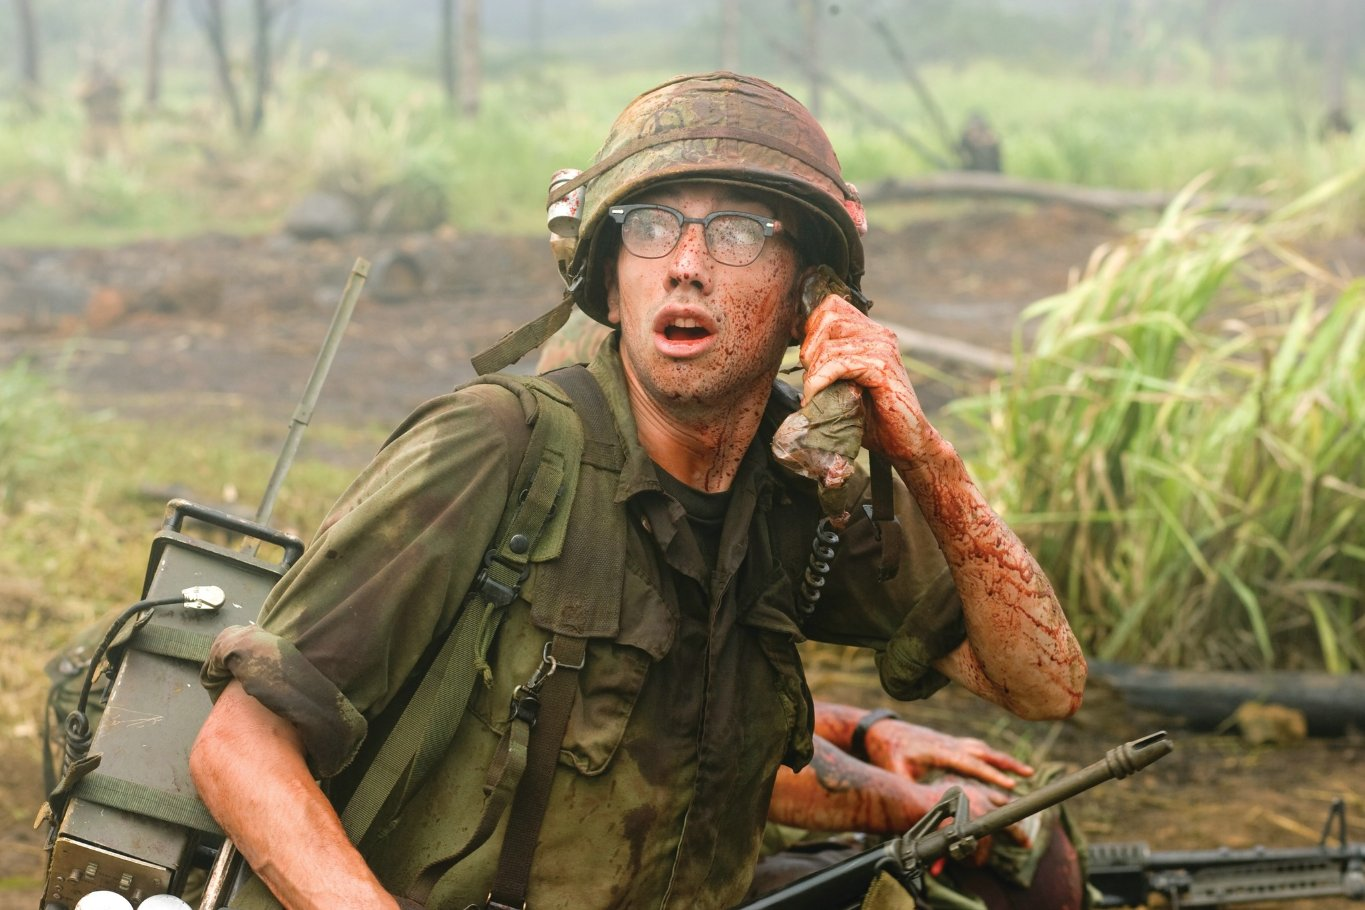 Tropic thunder movie music